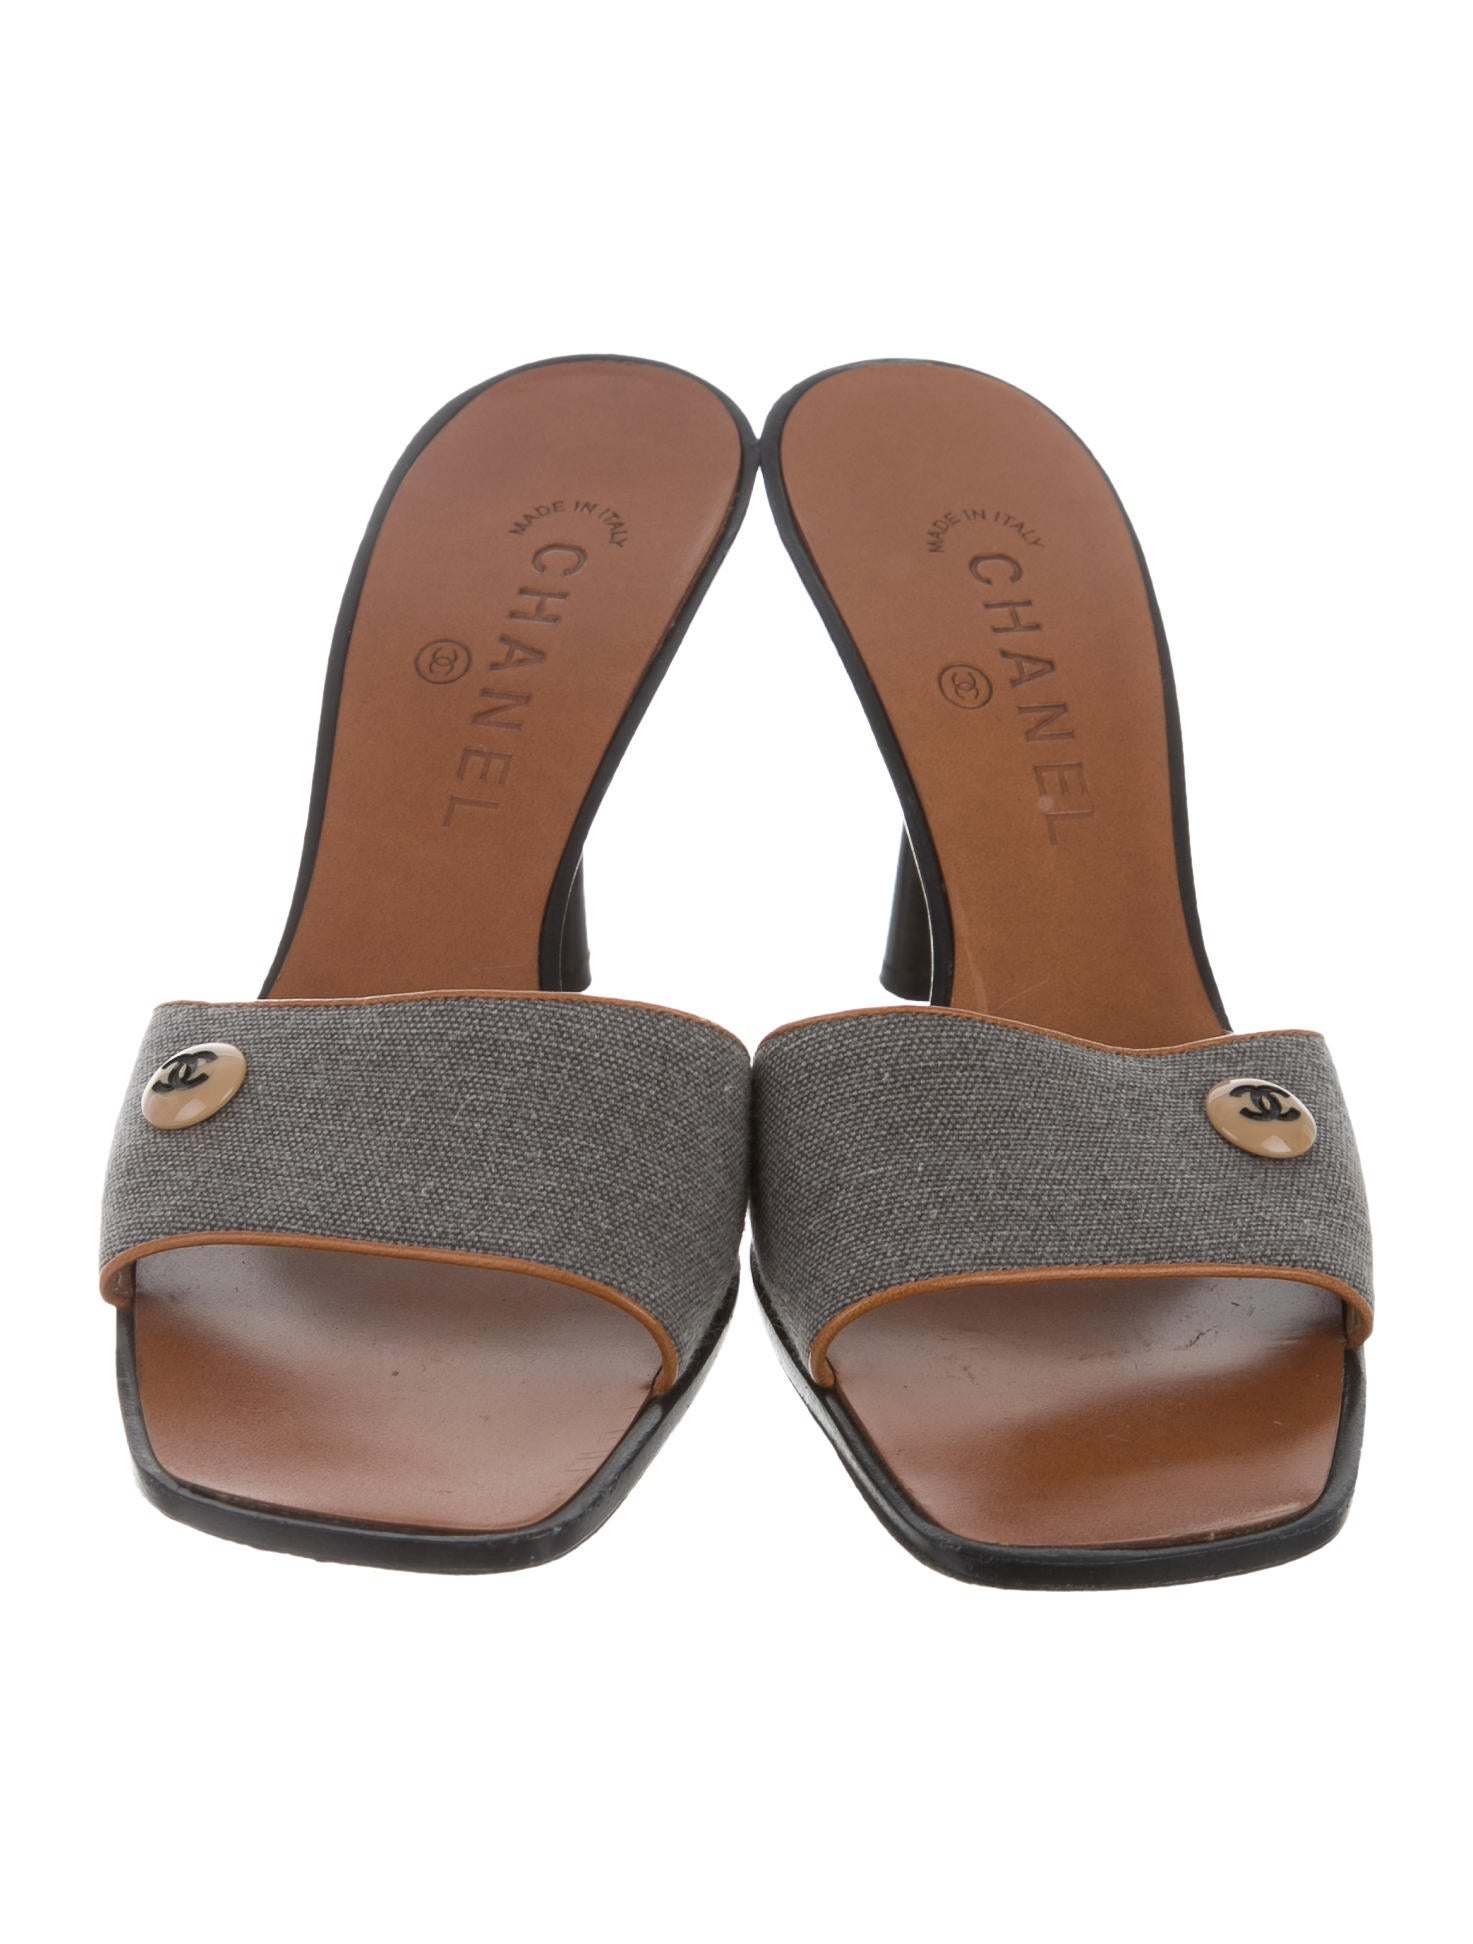 chanel canvas slide sandals shoes cha158161 the realreal